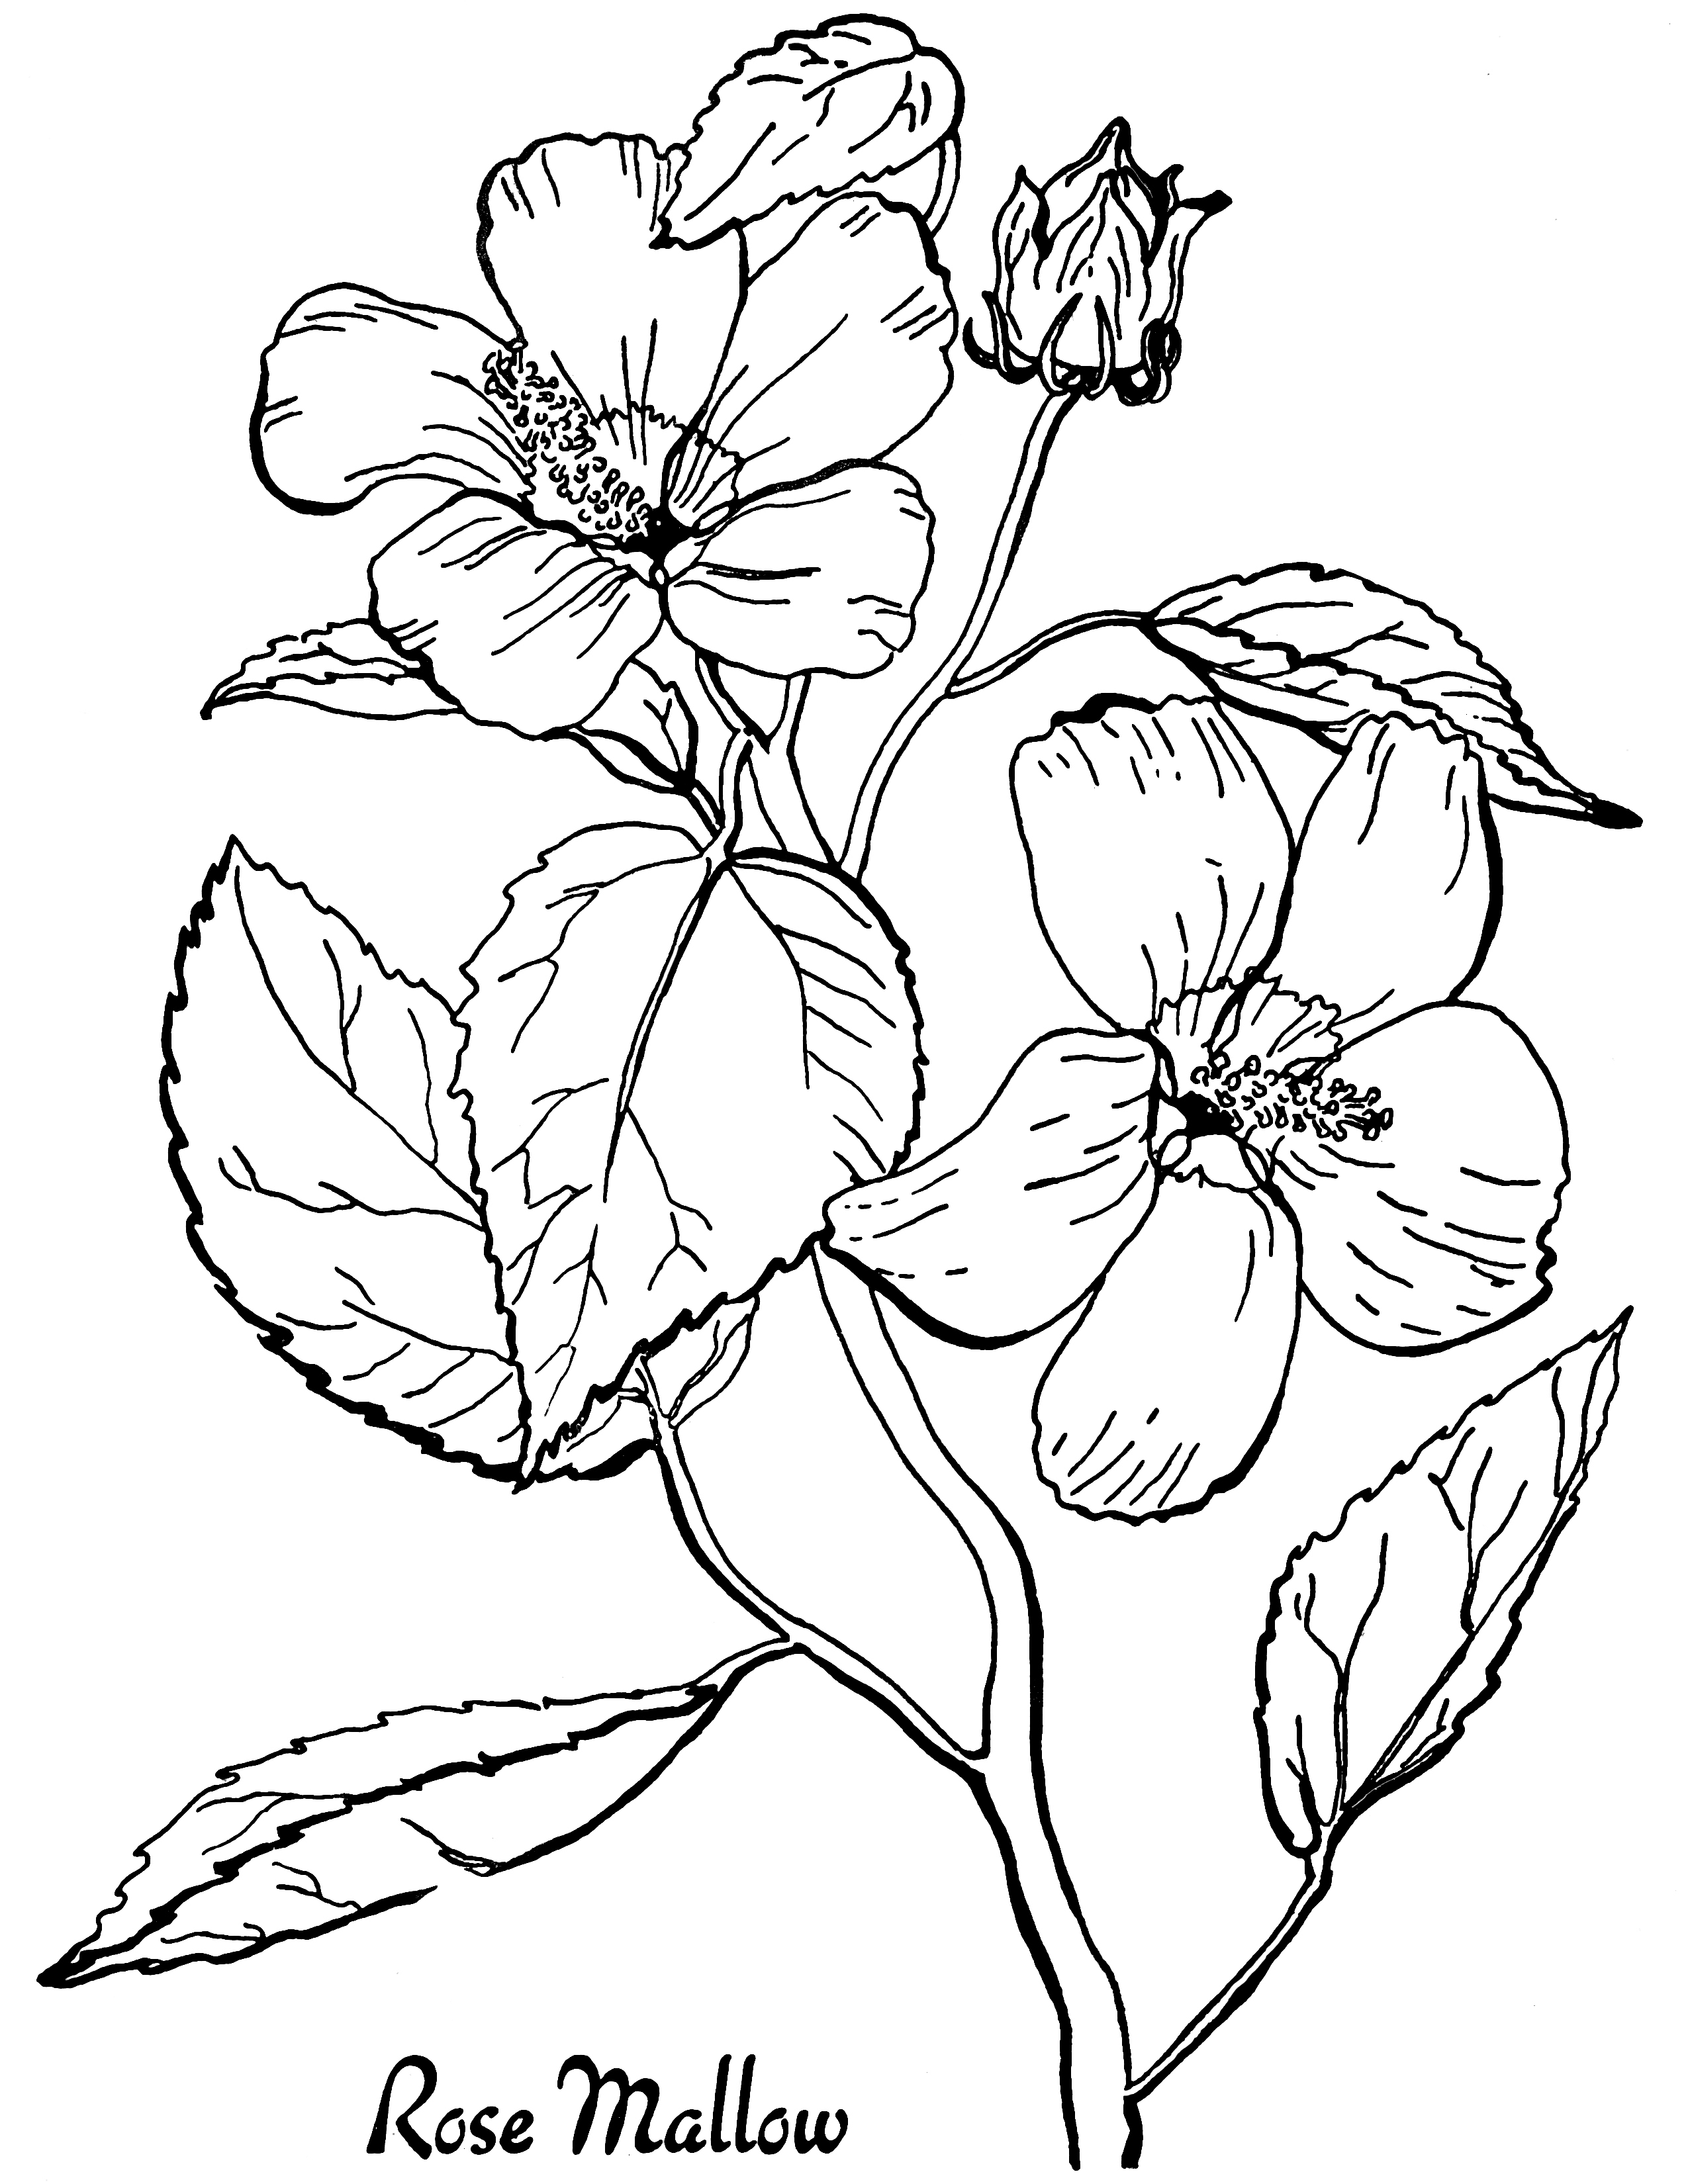 free coloring pages for adults printable 40 top free coloring pages we need fun adults free printable pages coloring for